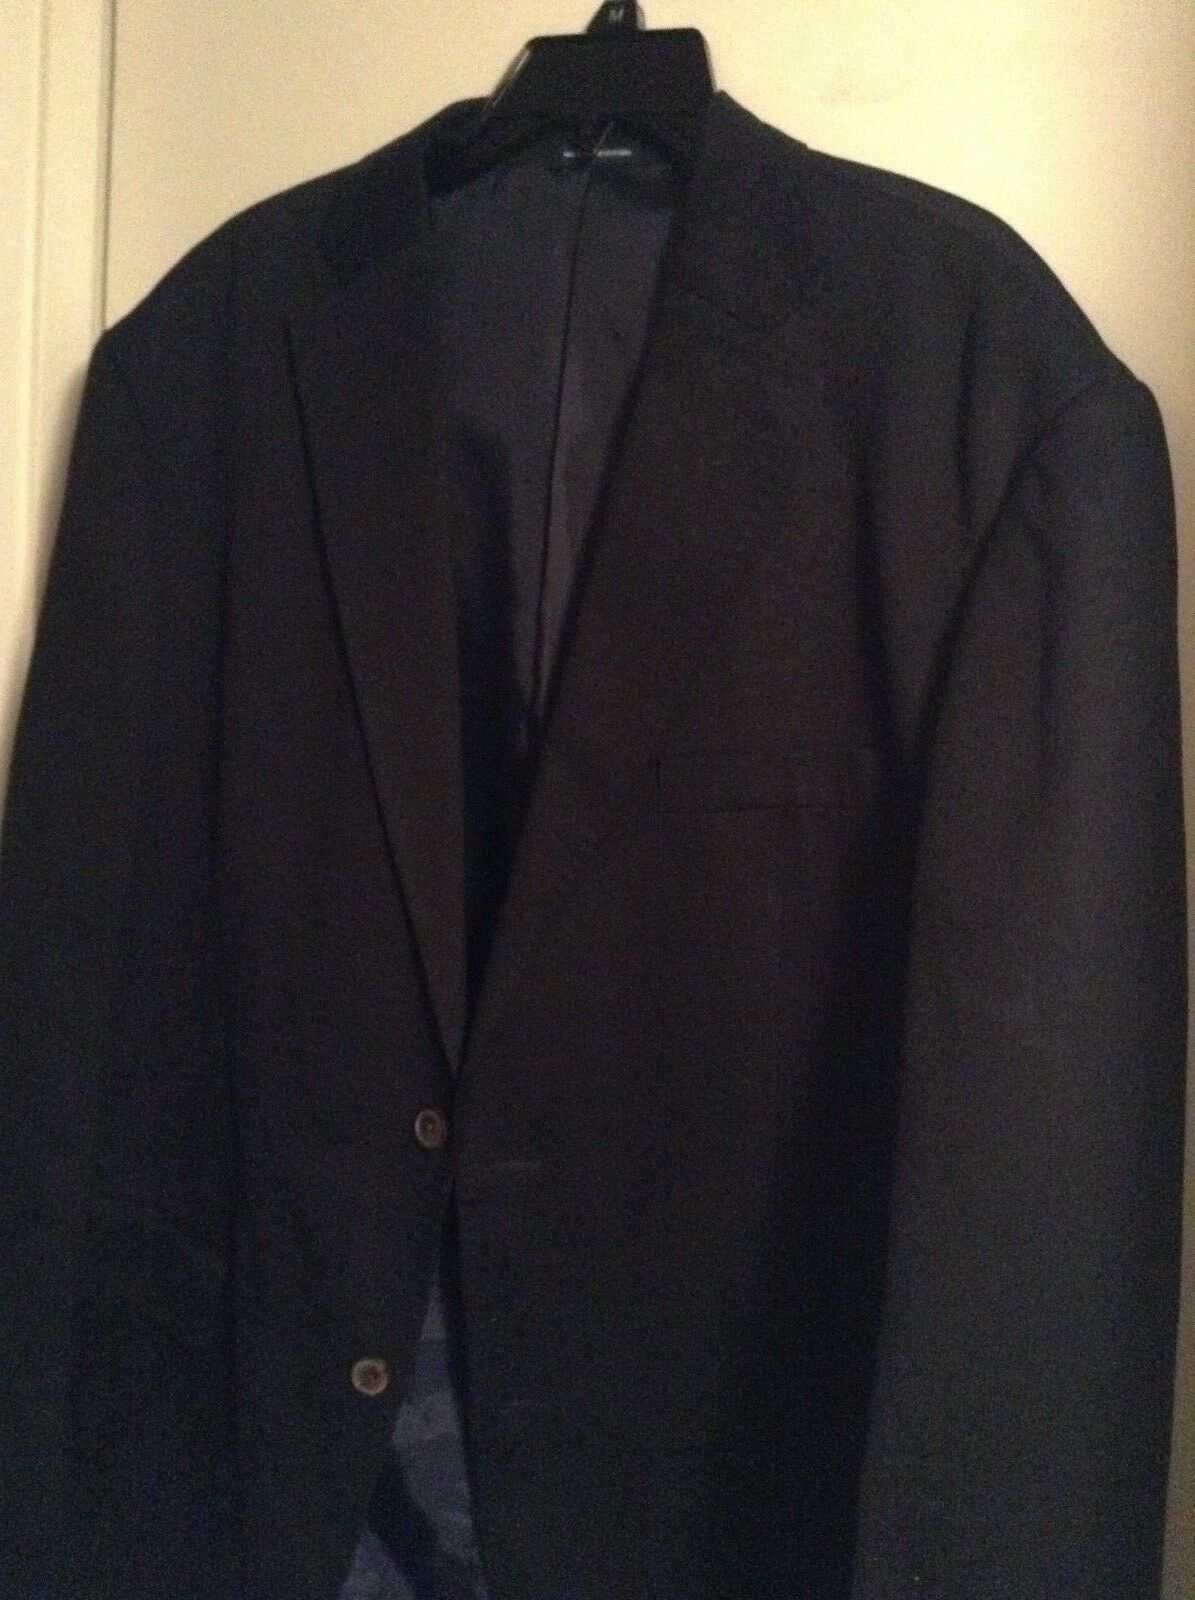 MENS Stafford collection 100 percent cotton blazer sport coat NWT XL